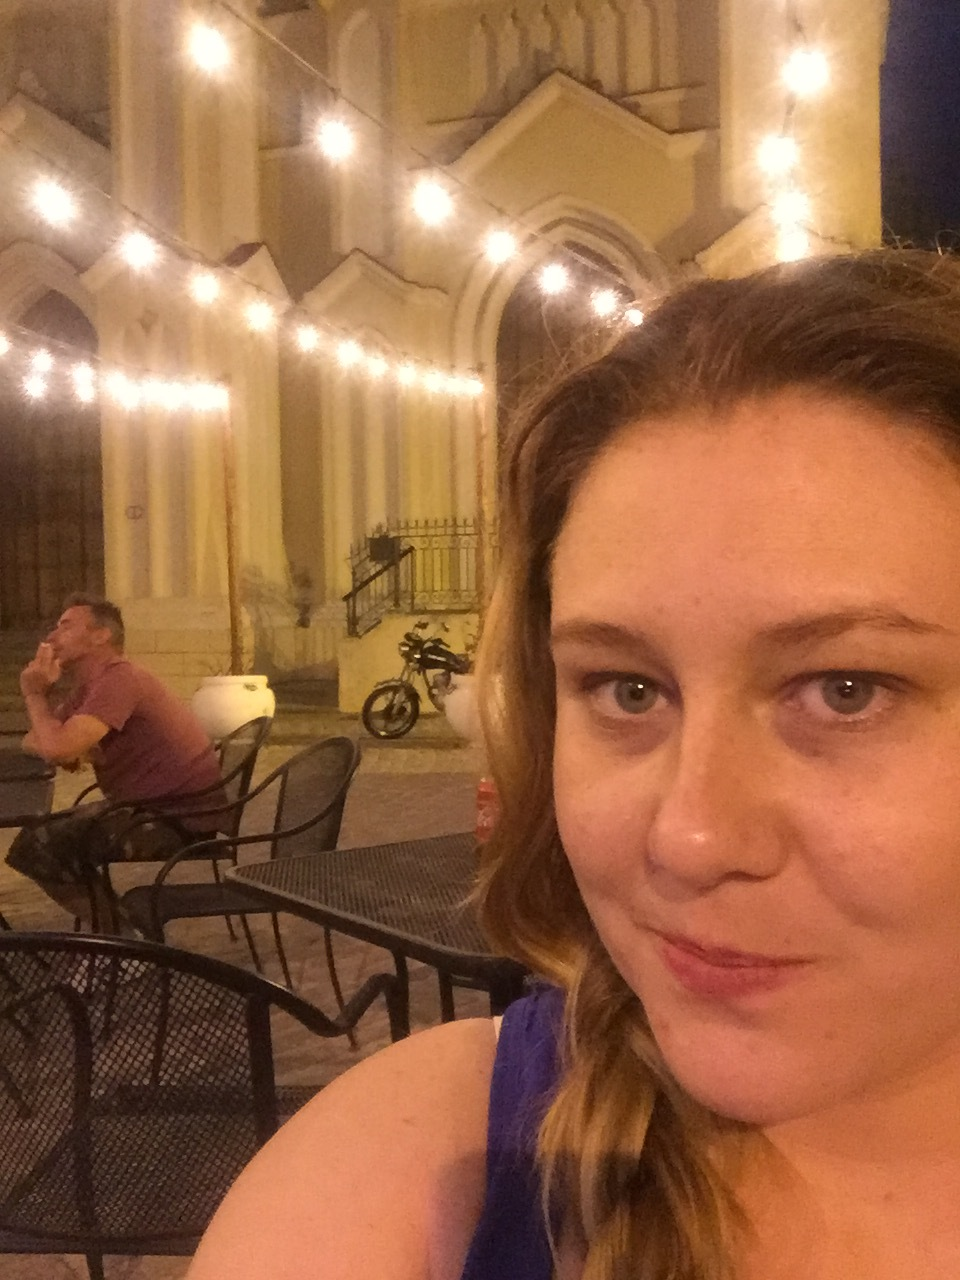 Night out in Old Havana